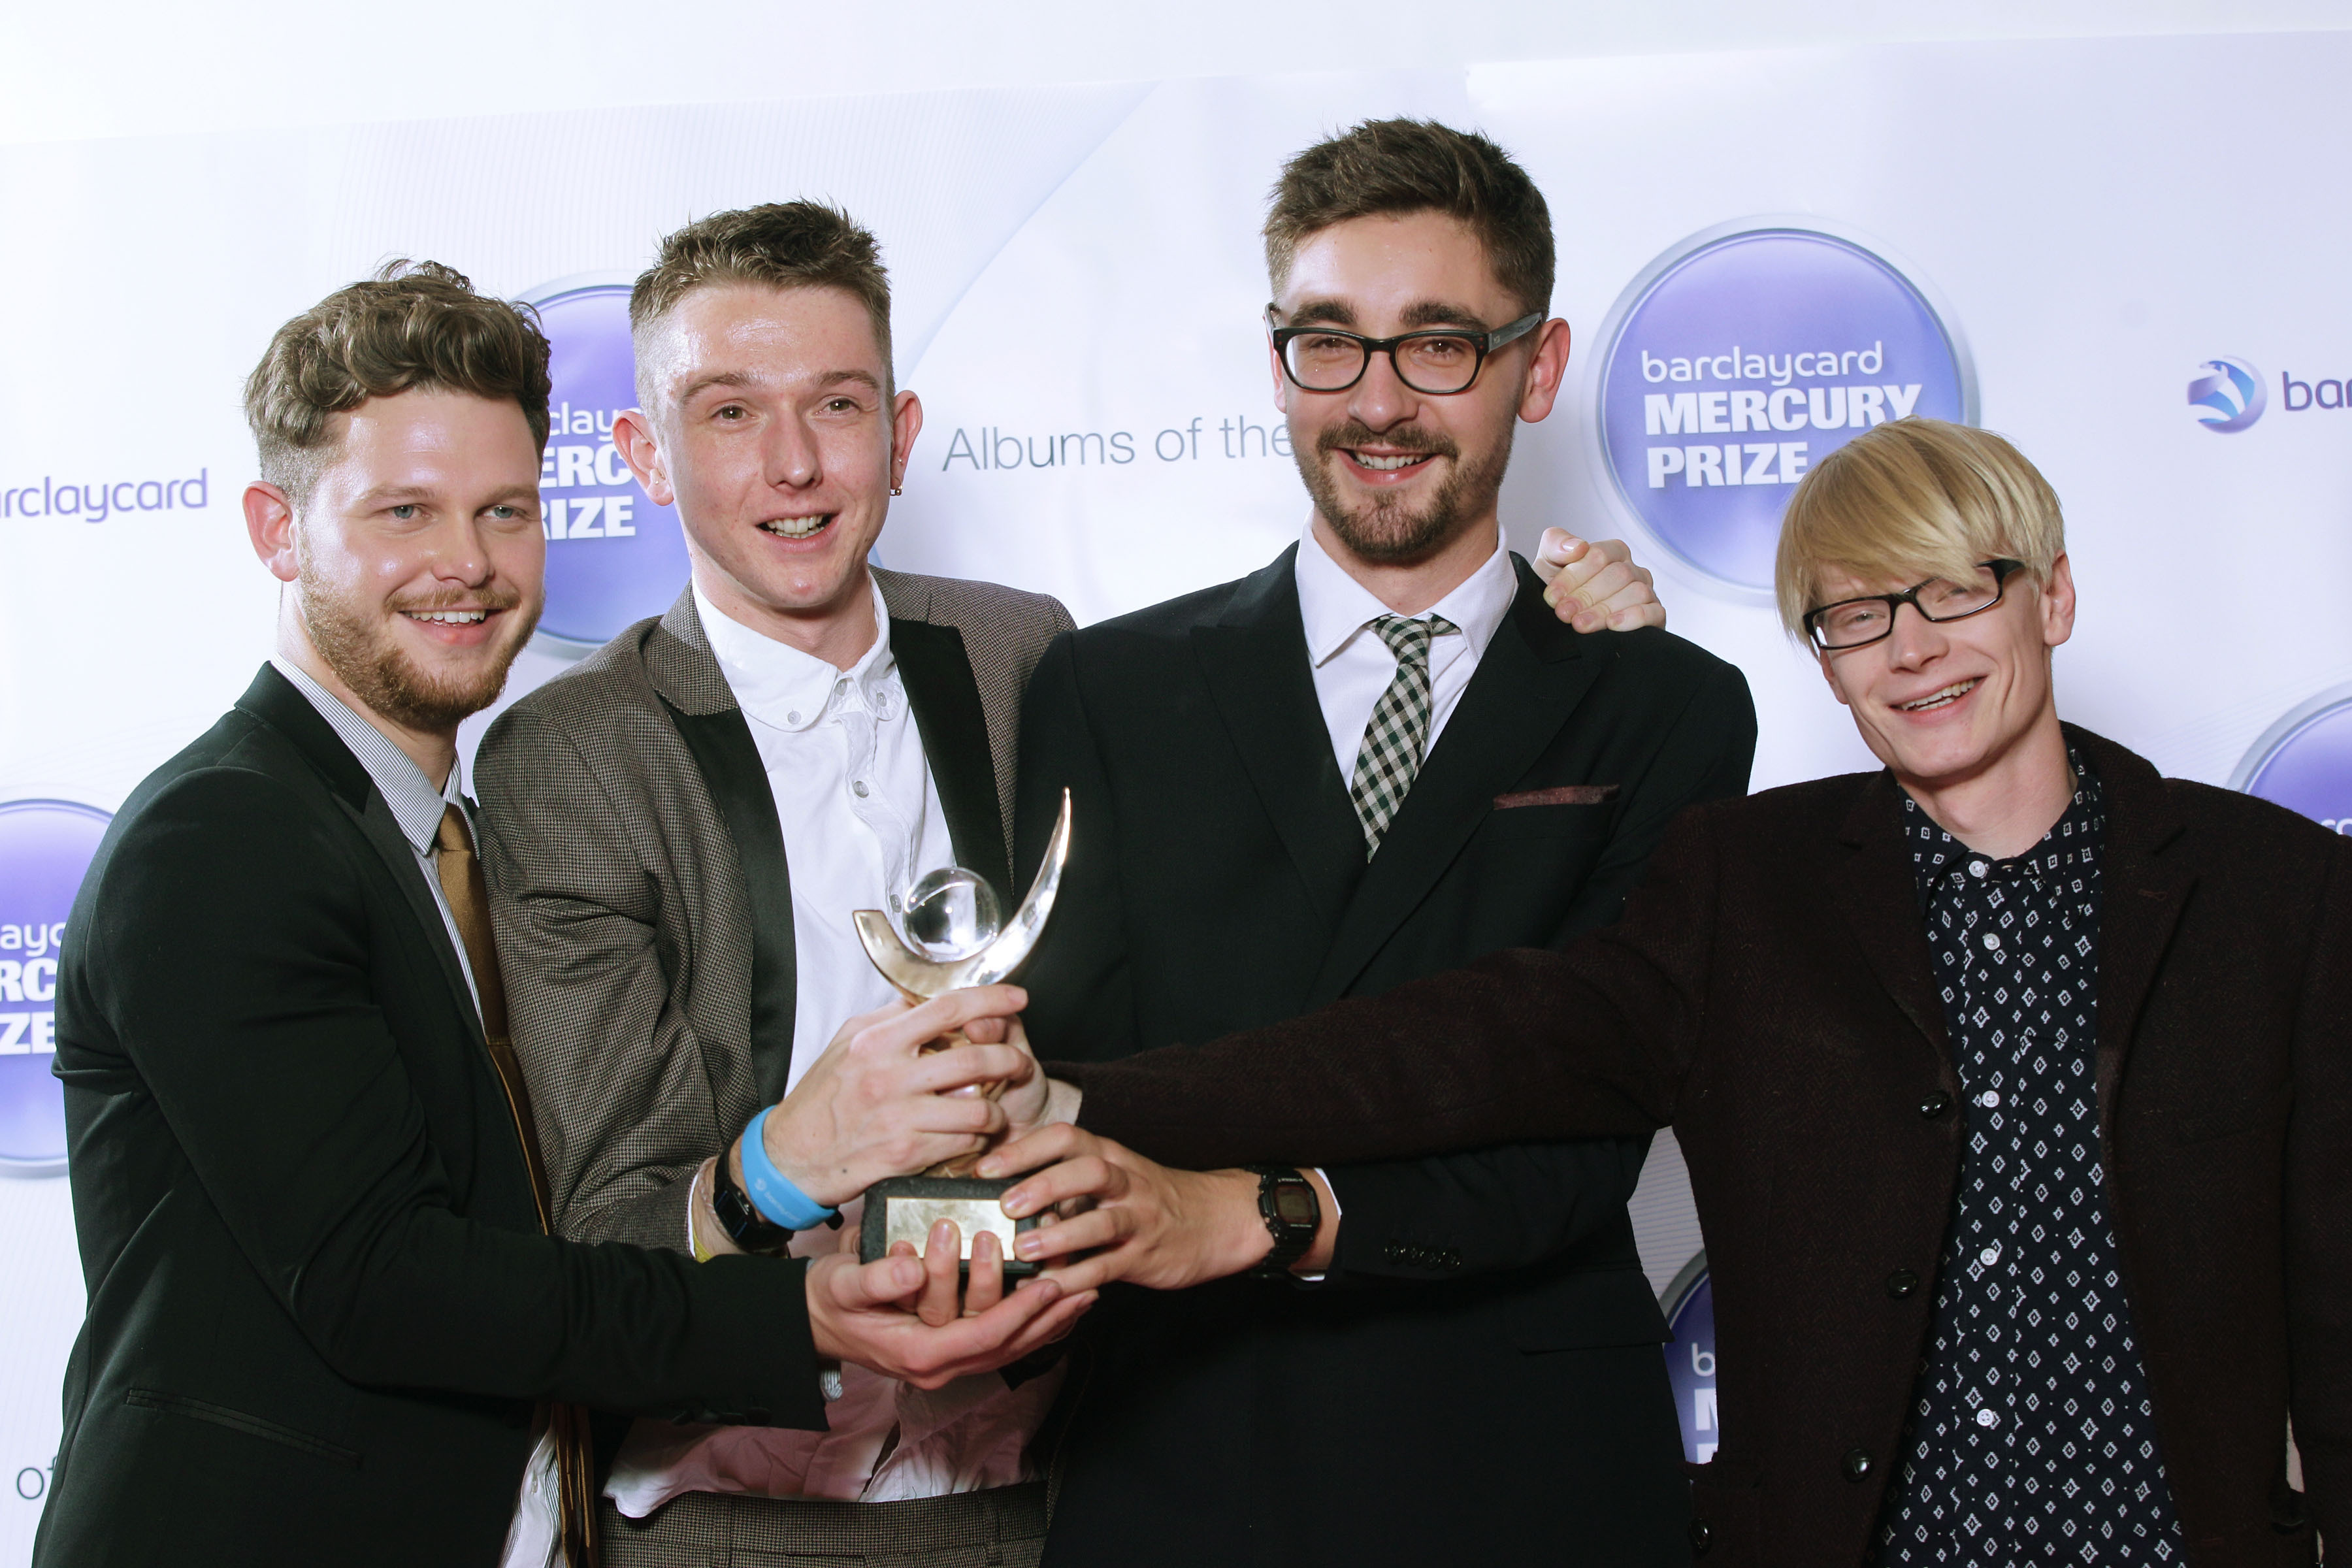 Barclaycard Mercury Music Prize 2012 - London